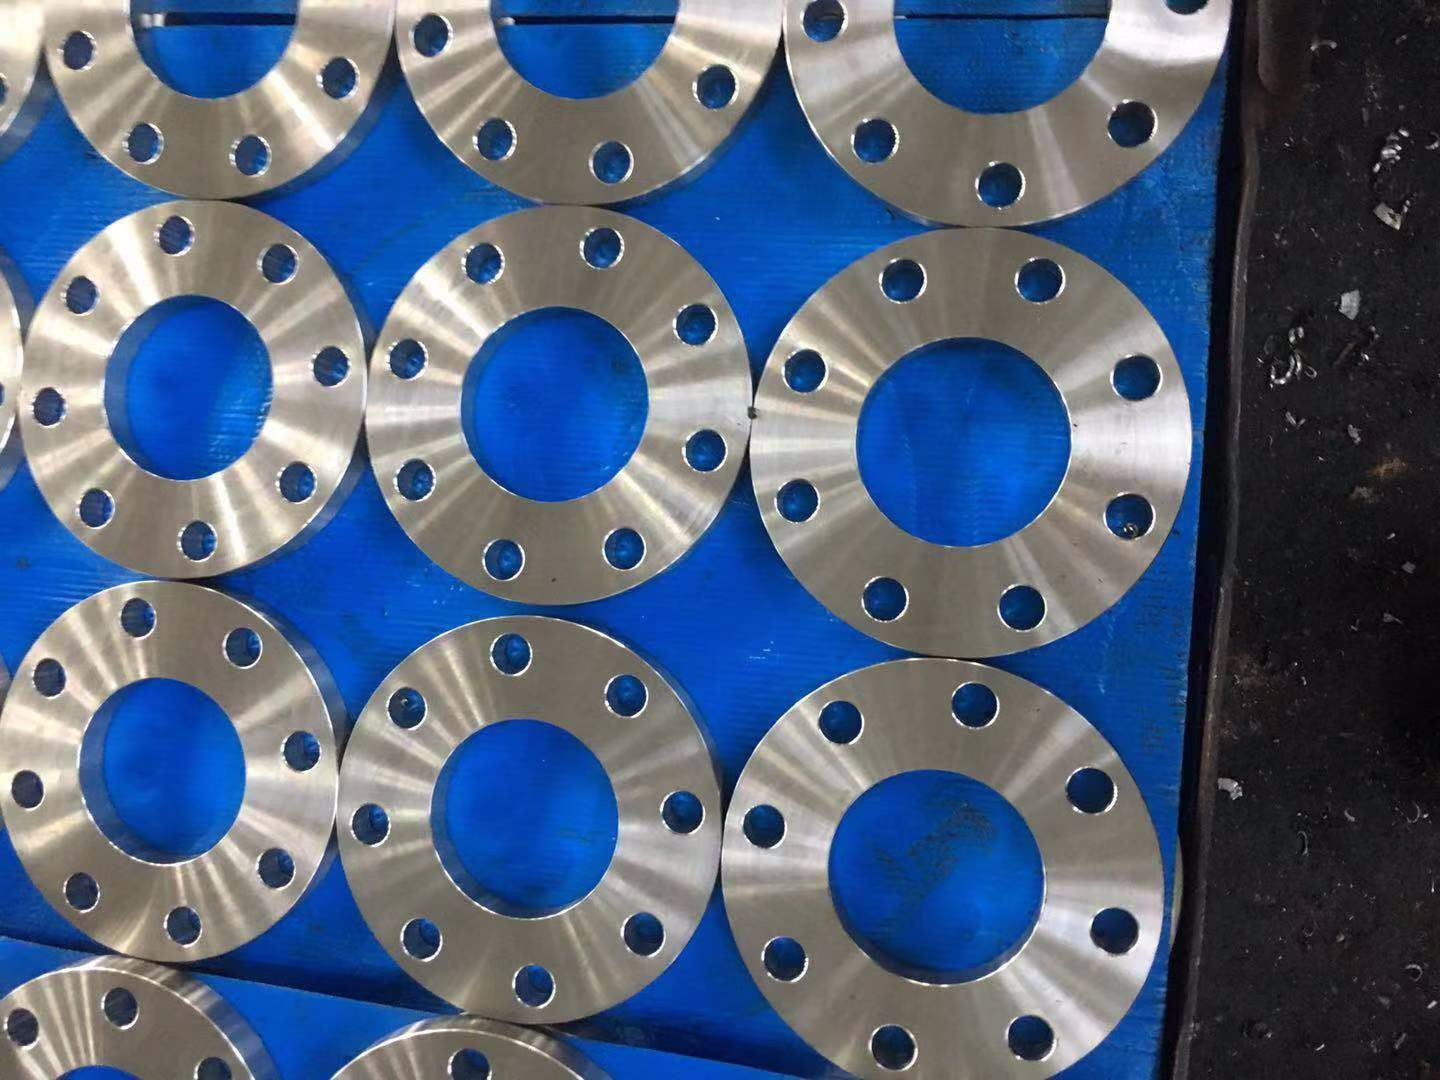 Forged Stainless Plate Flanges Manufacturers, Forged Stainless Plate Flanges Factory, Supply Forged Stainless Plate Flanges